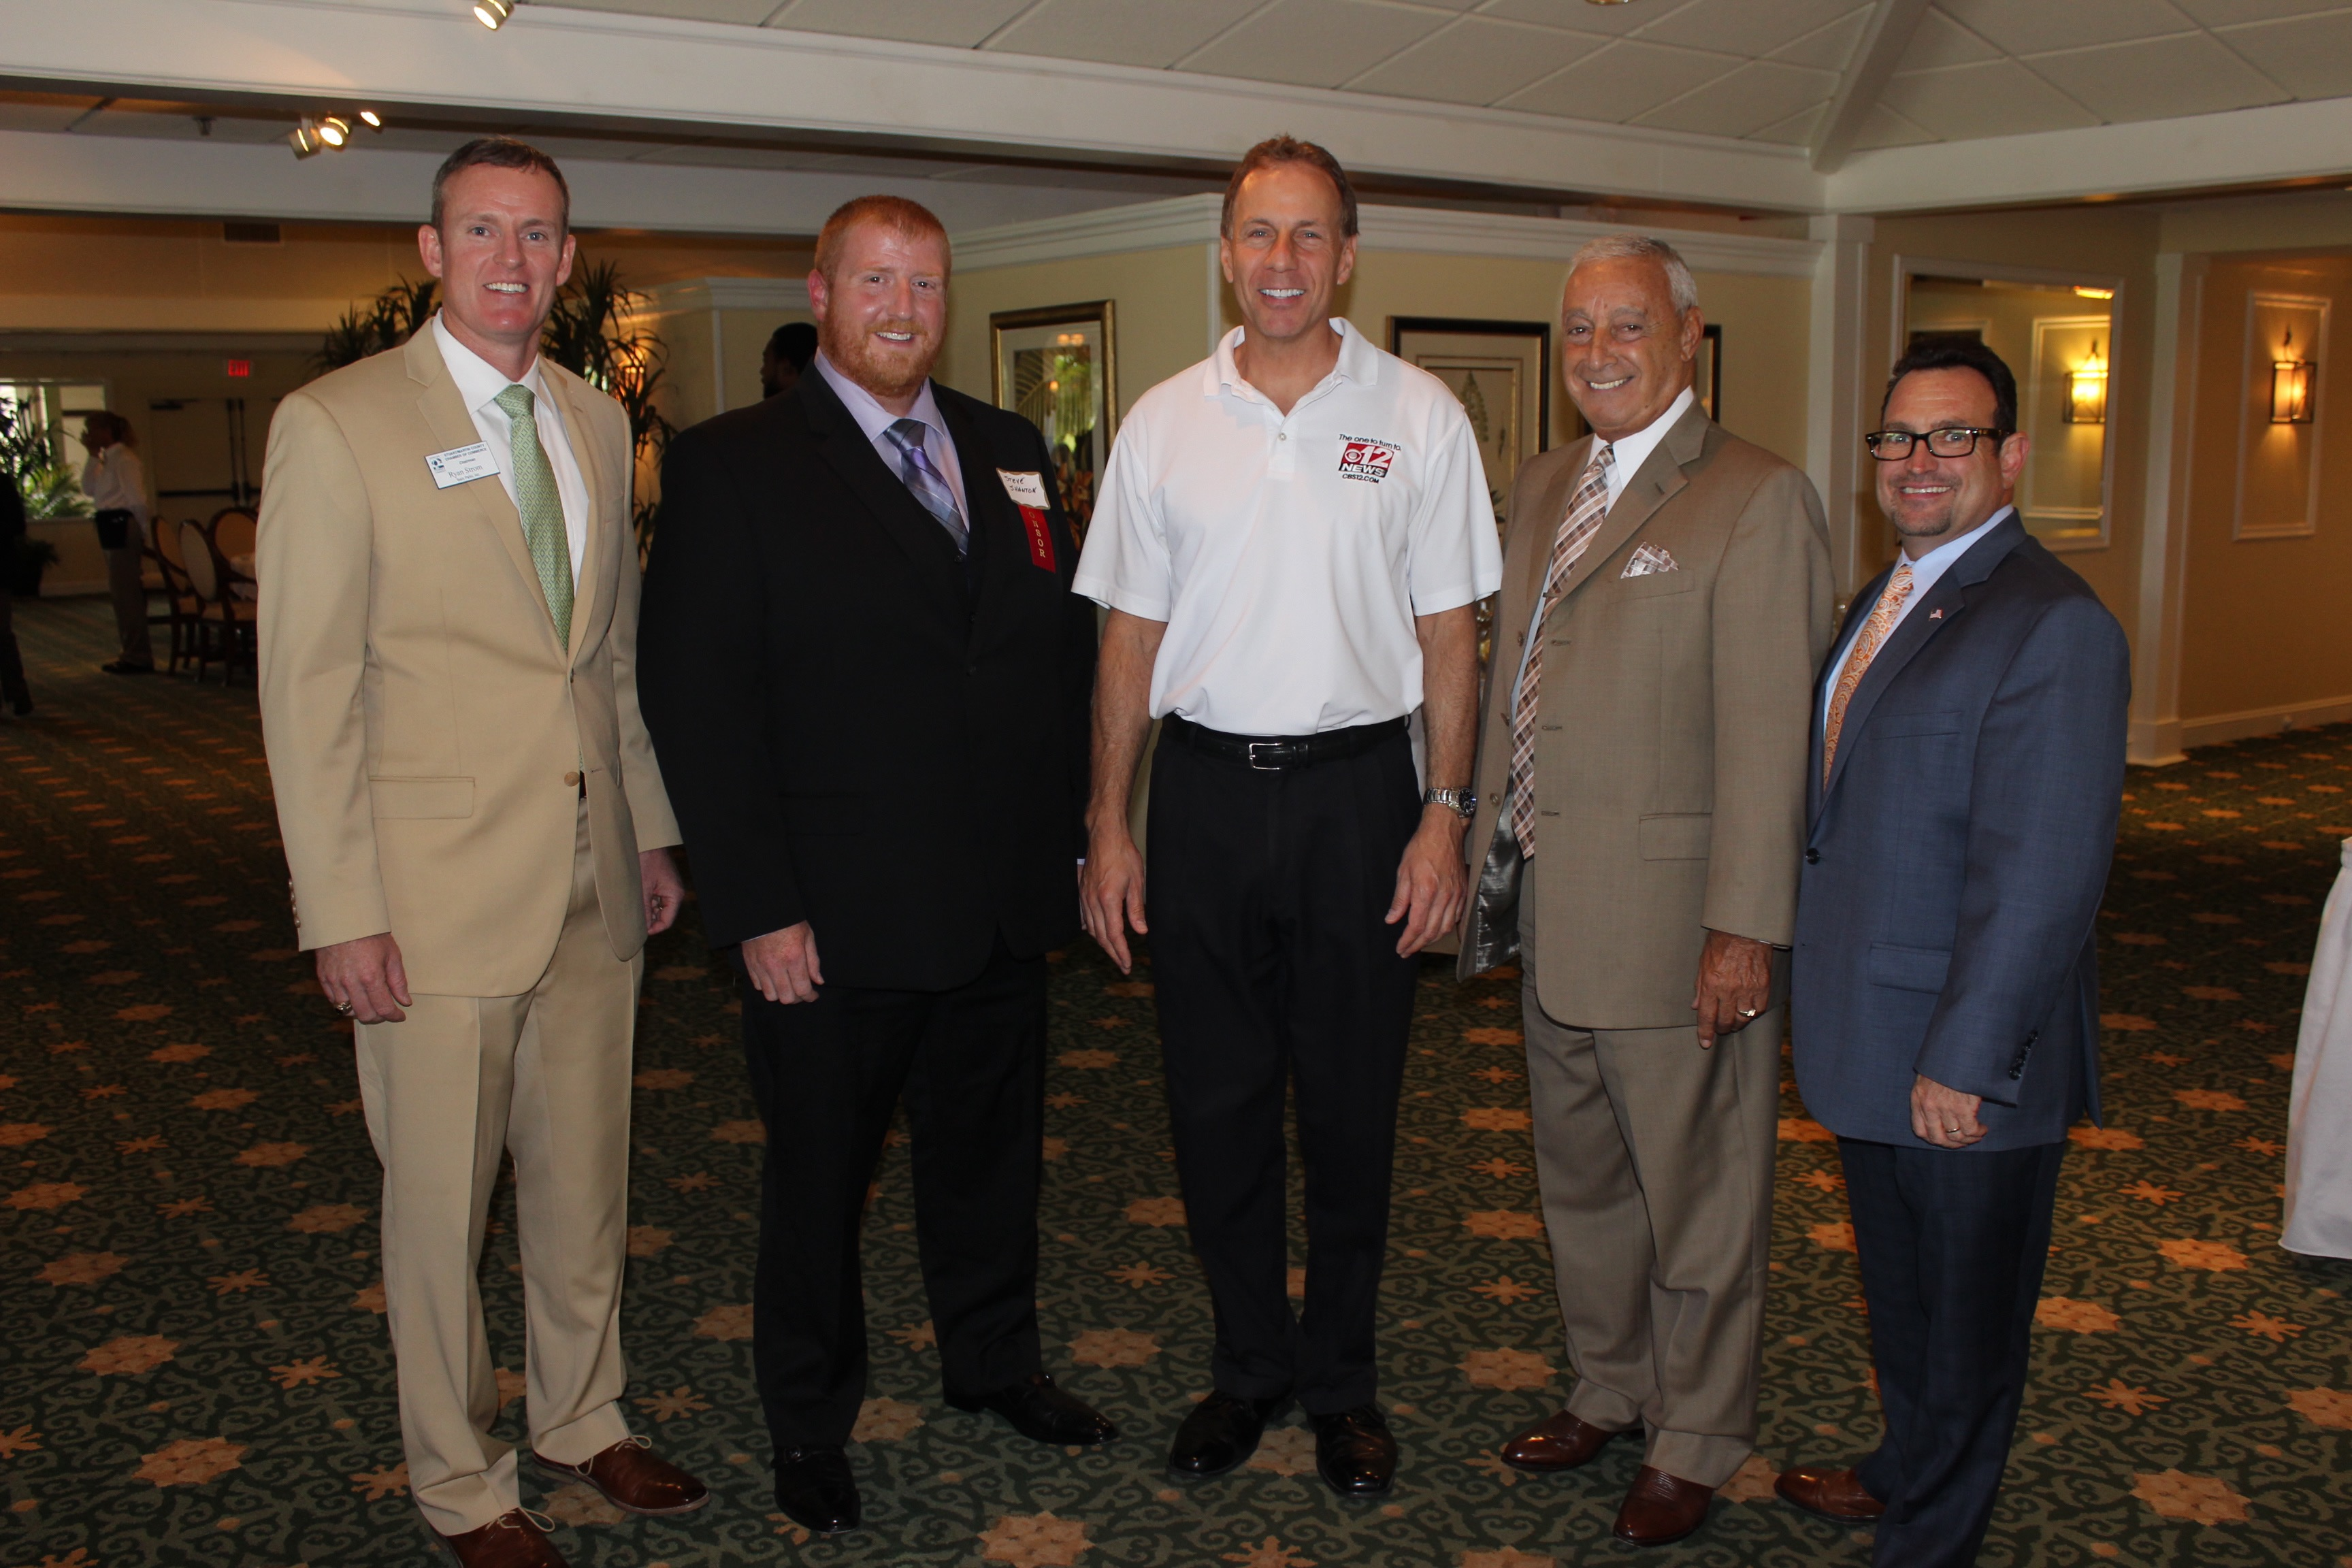 Venture Construction Group Stephen Shanton July 2016 Networking Luncheon at Mariner Sands